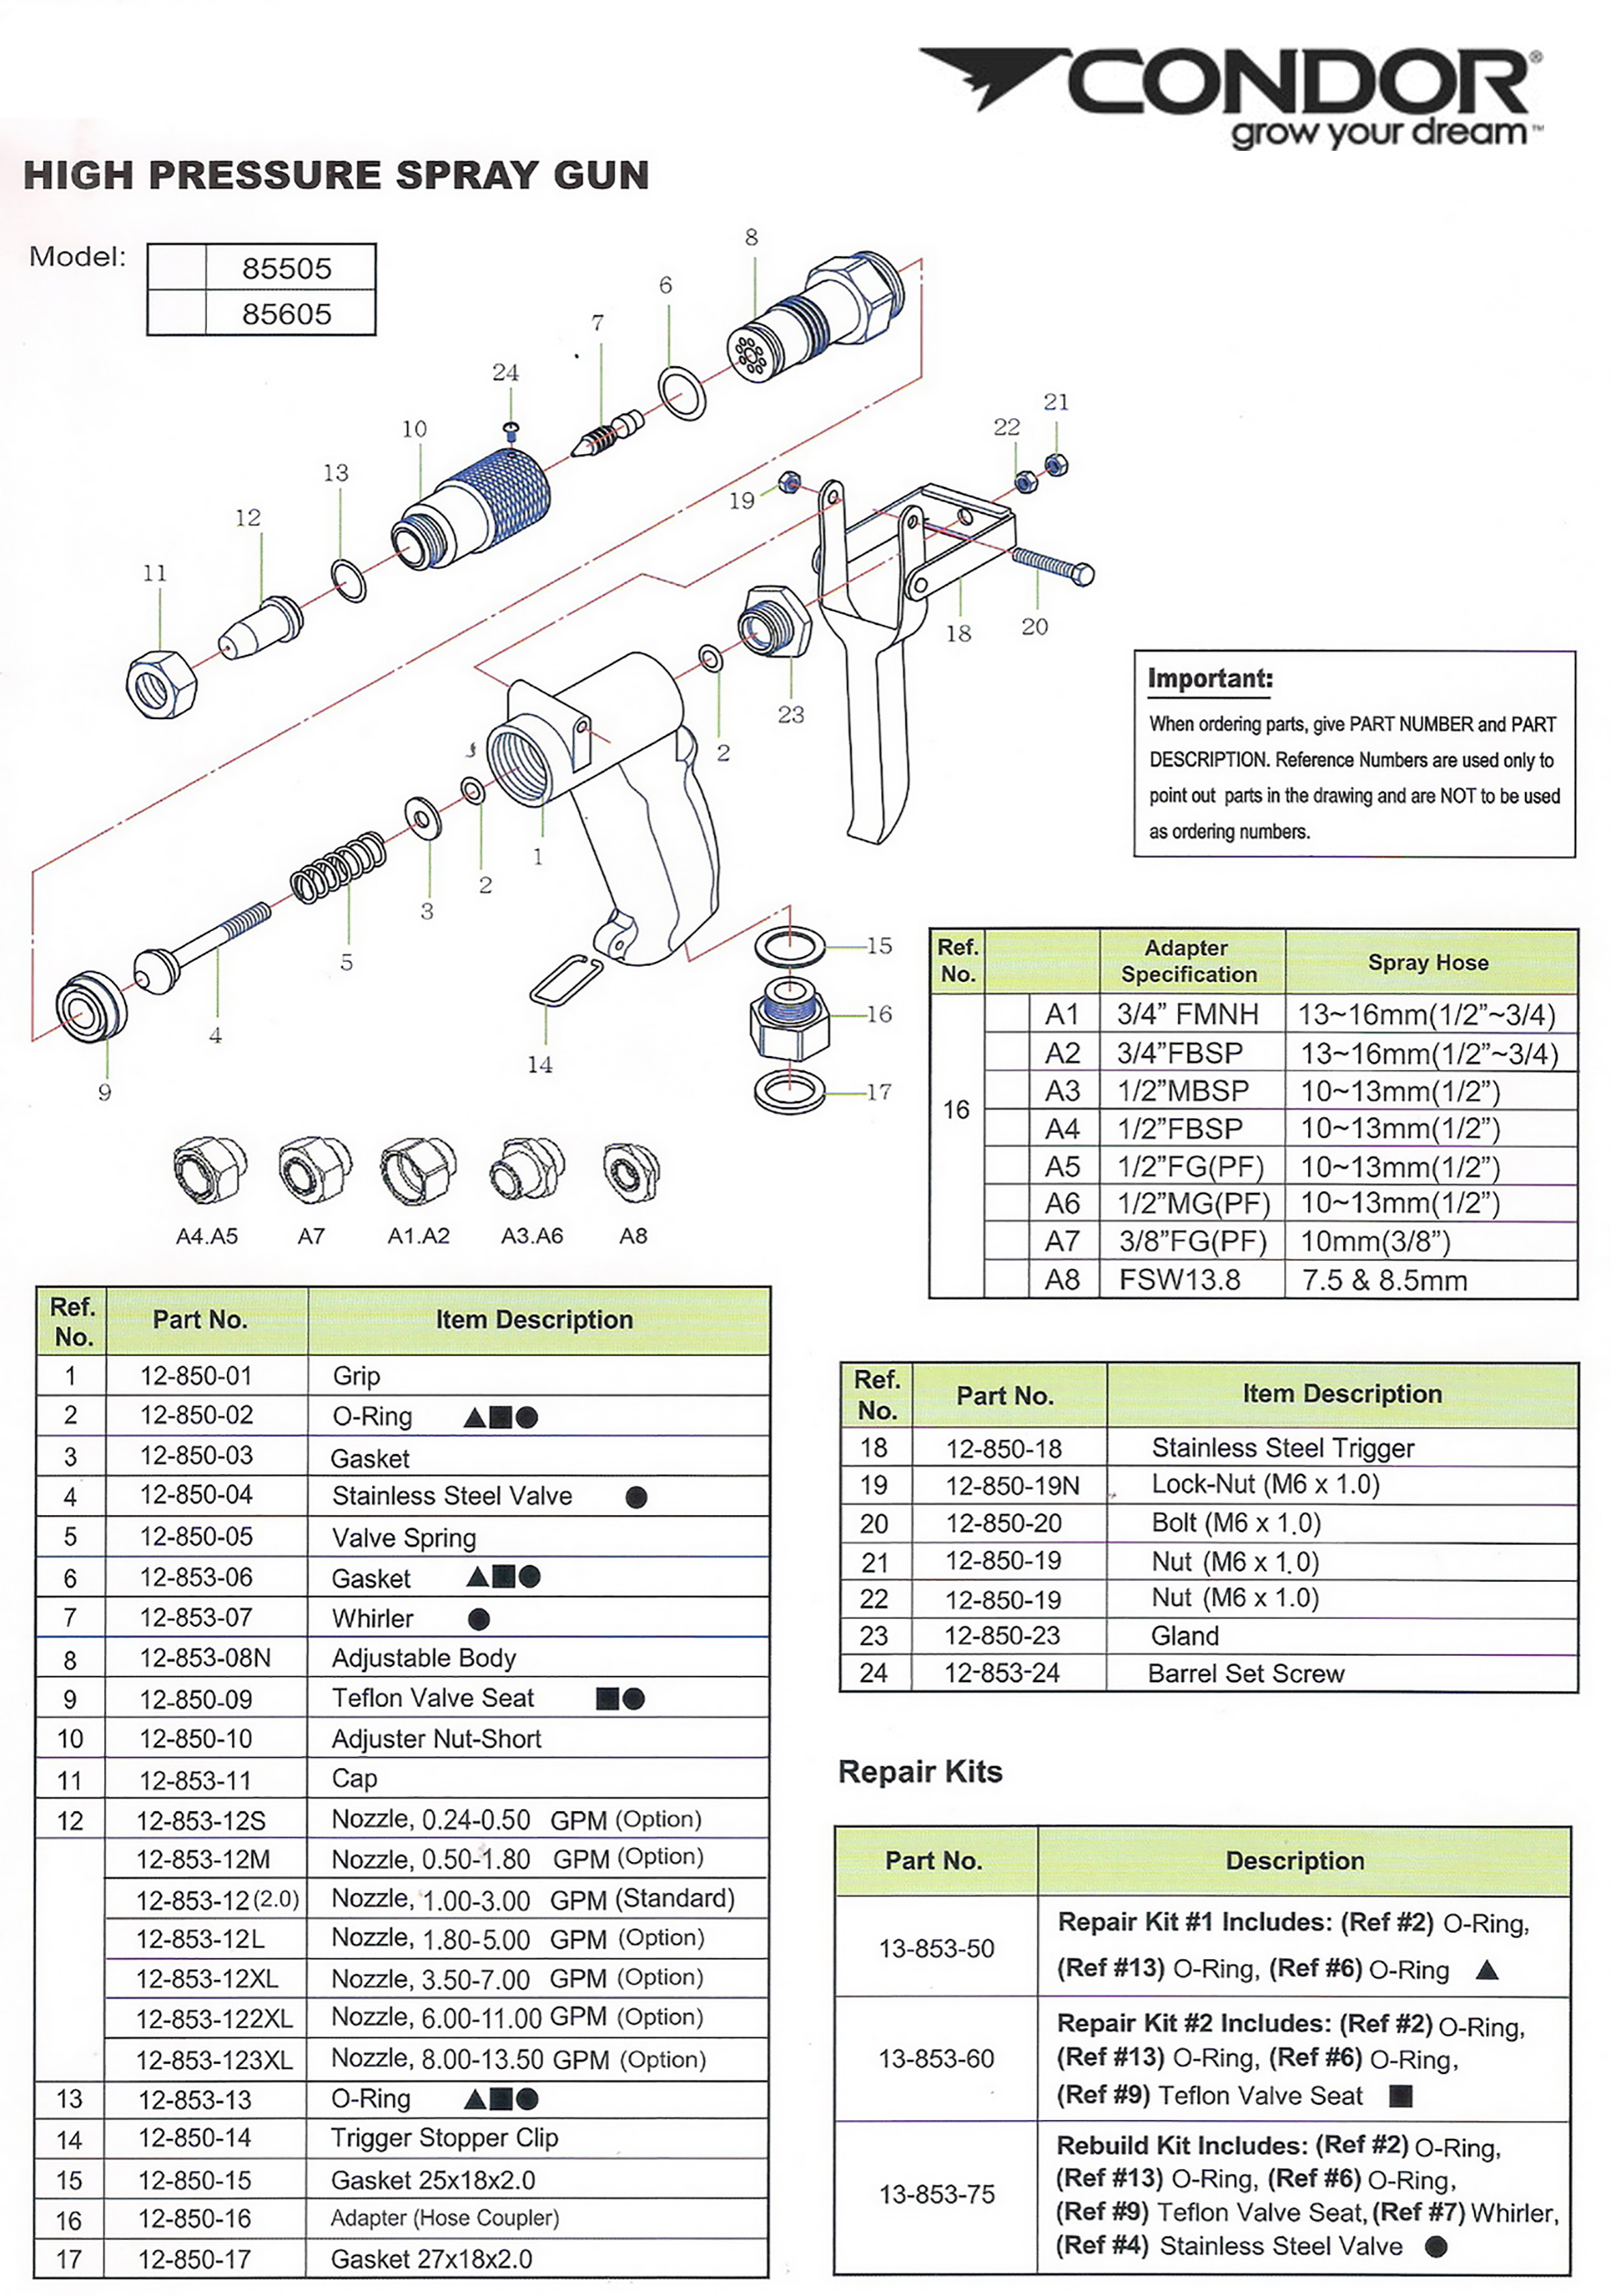 ... Honda GX120 owners manual K-pistol Spare parts list